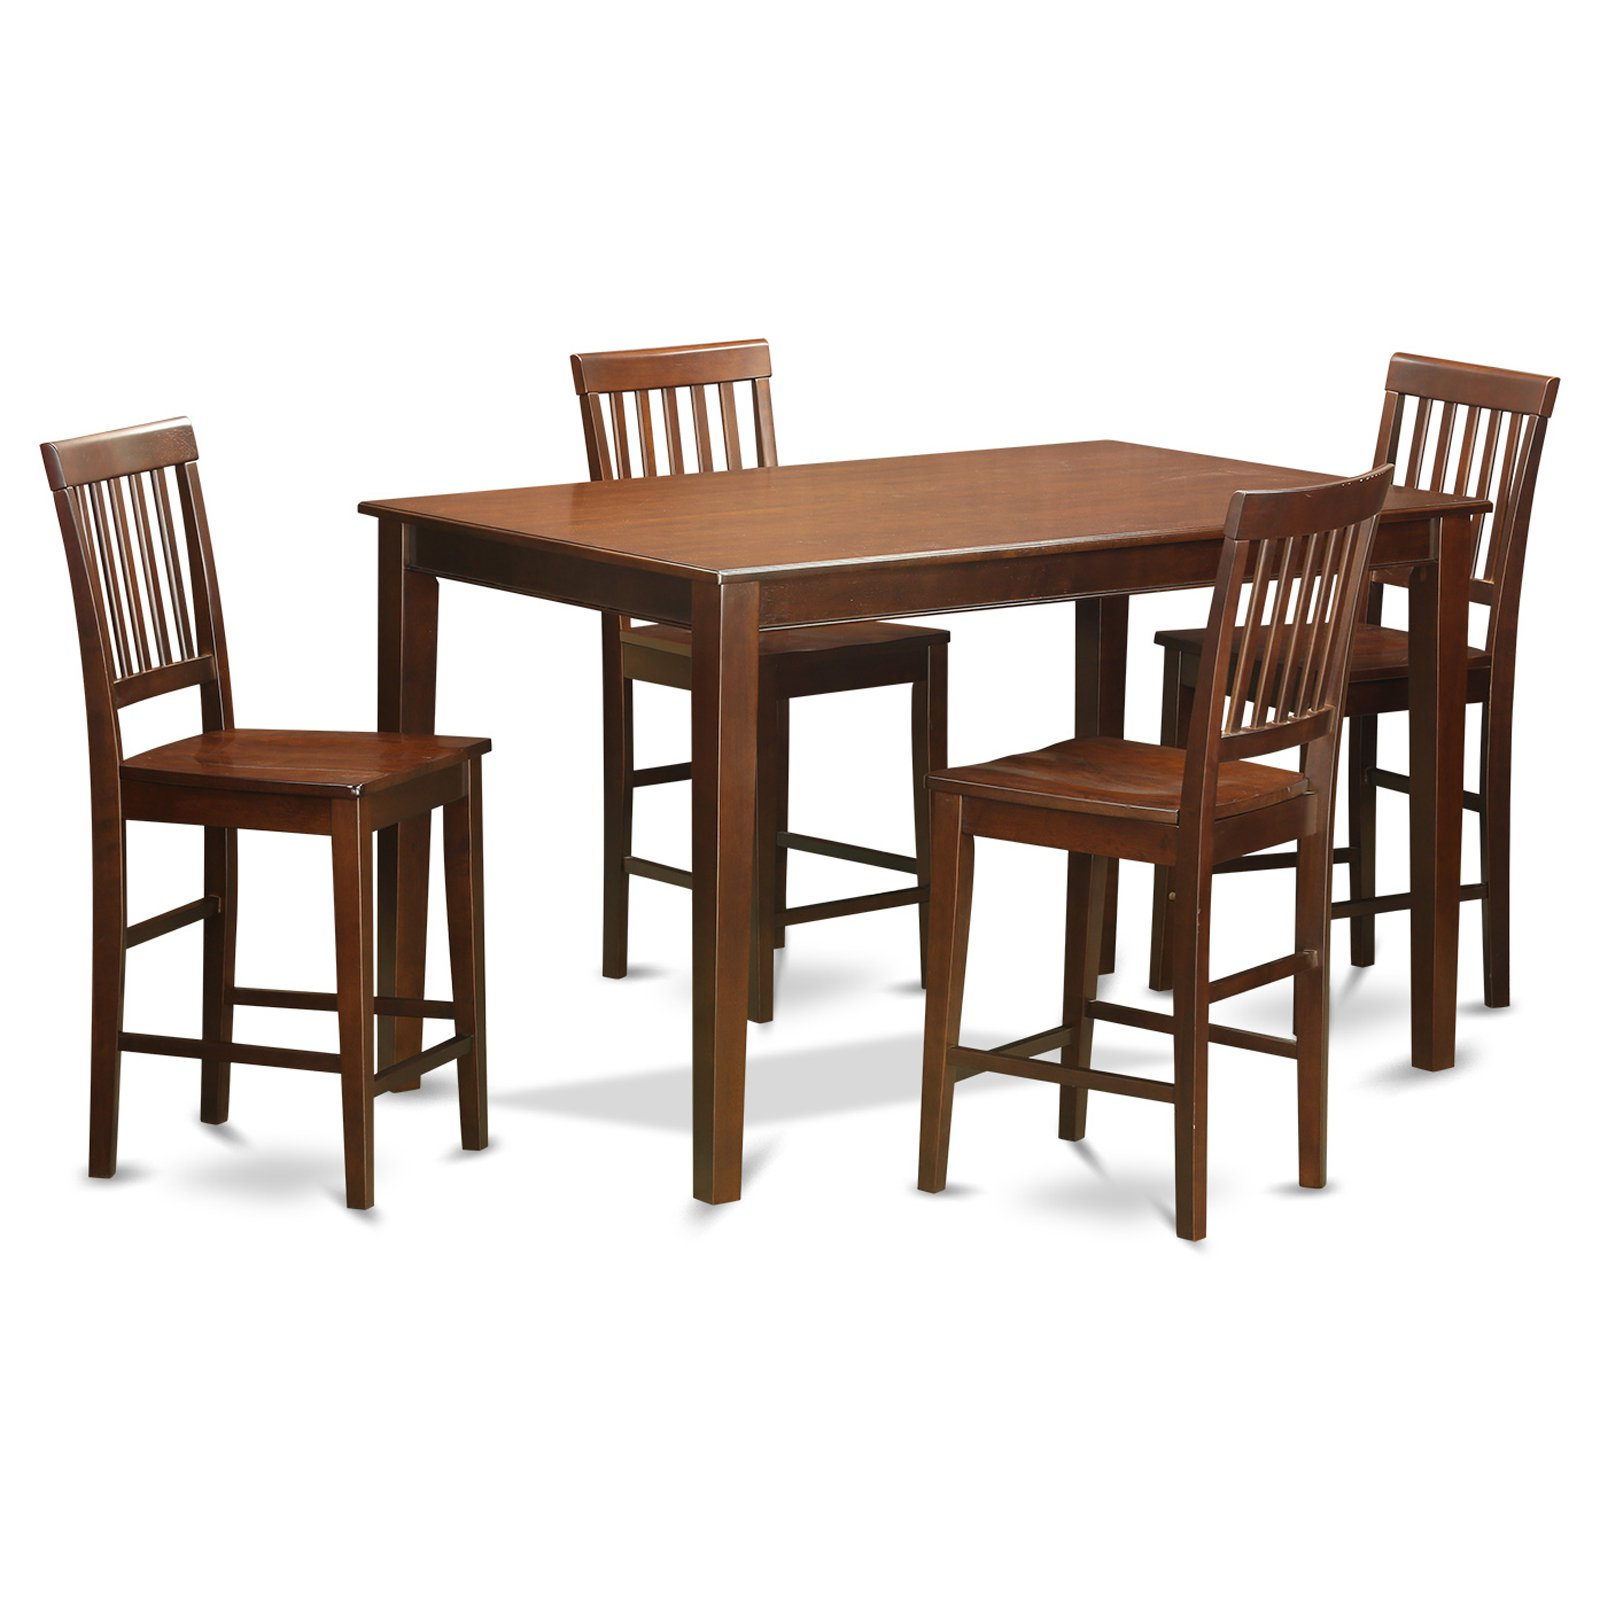 East West Furniture Dudley 5 Piece Slat Back Dining Table Set